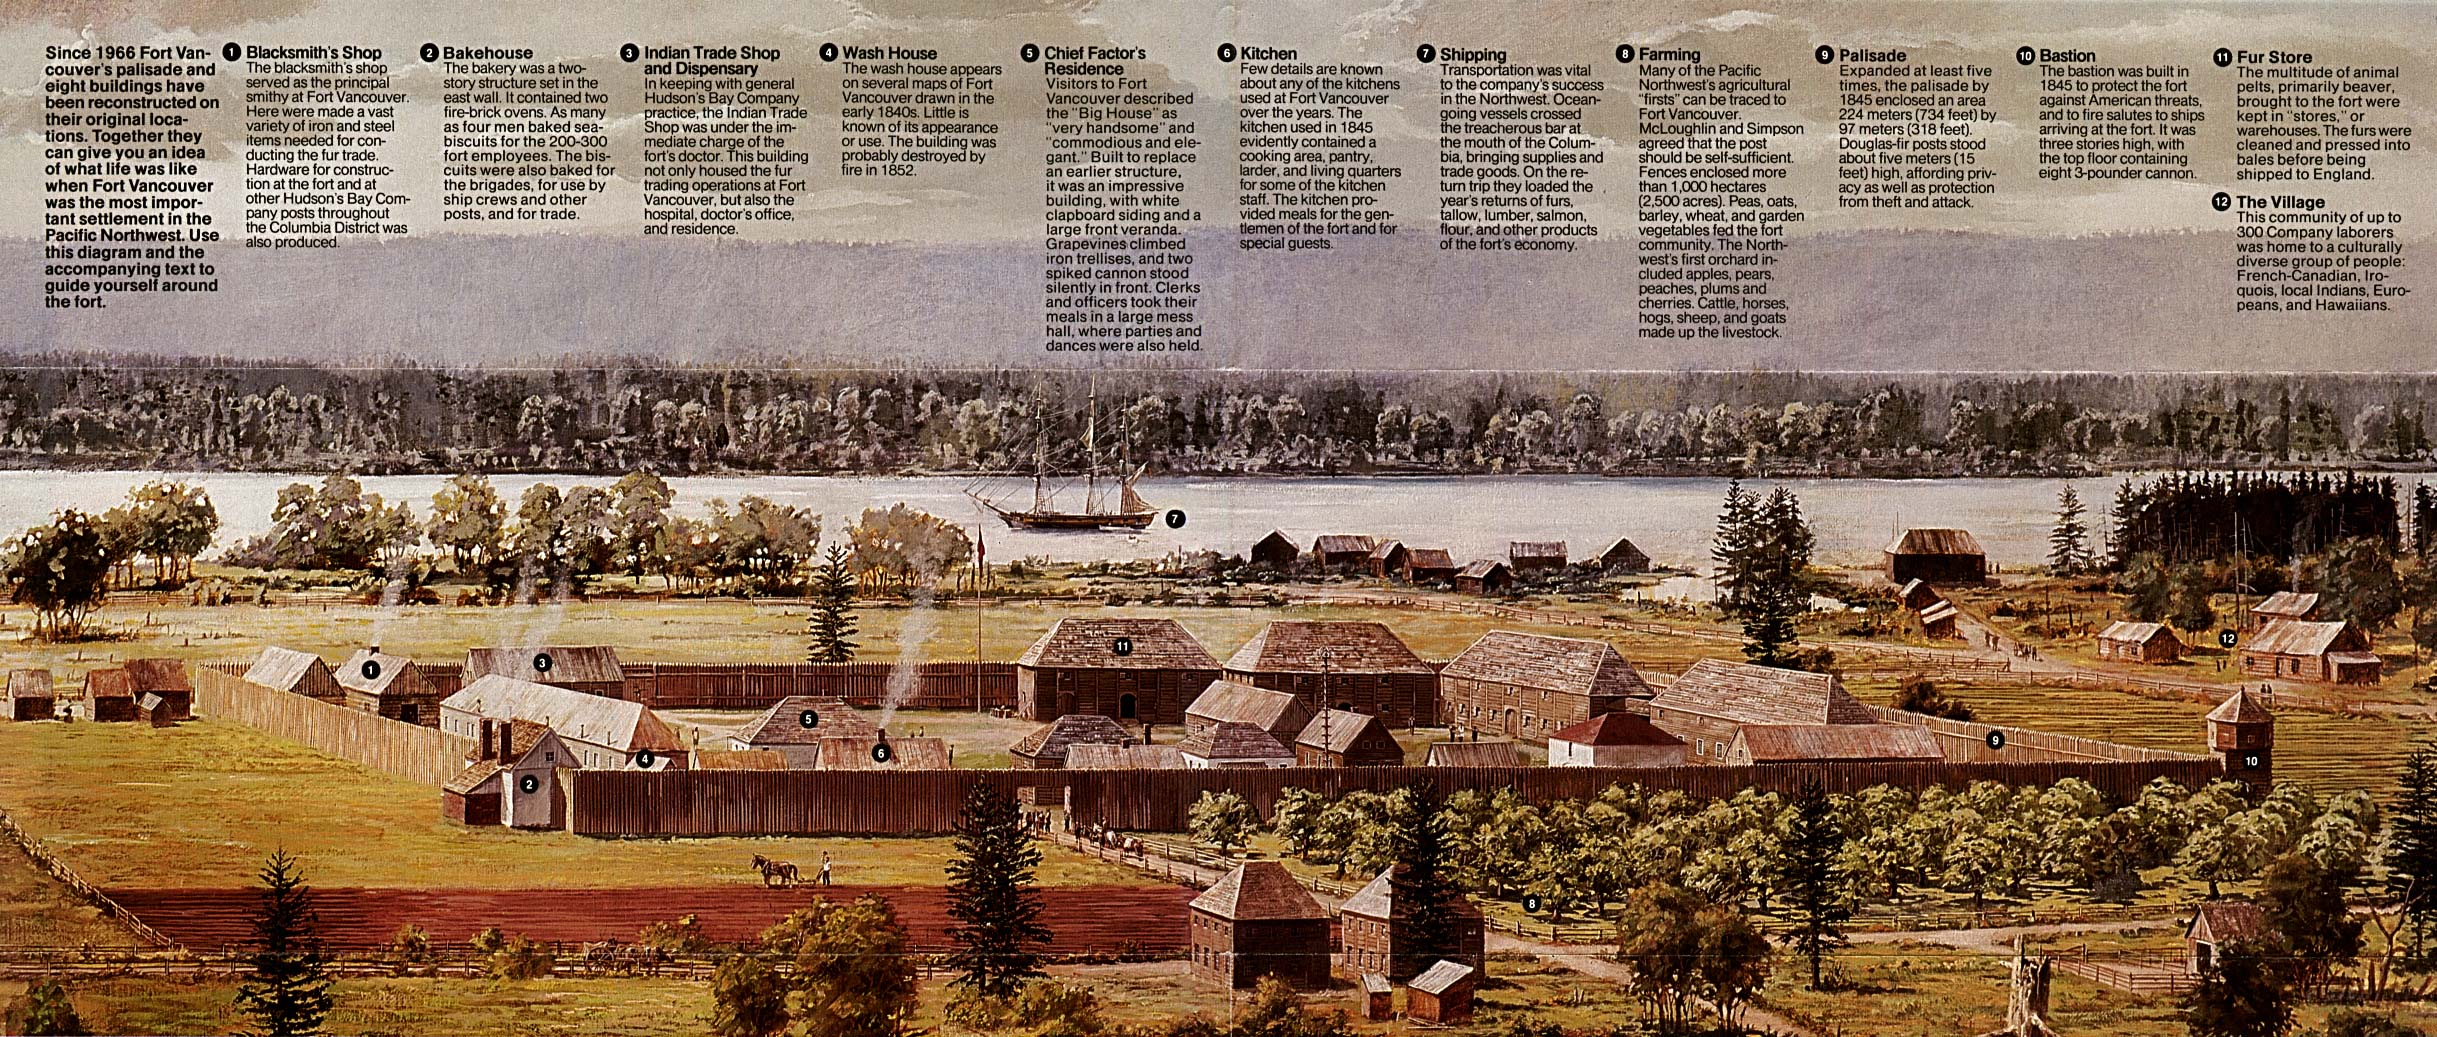 Fort Vancouver National Historic Site Schematic Map, Washington, United States